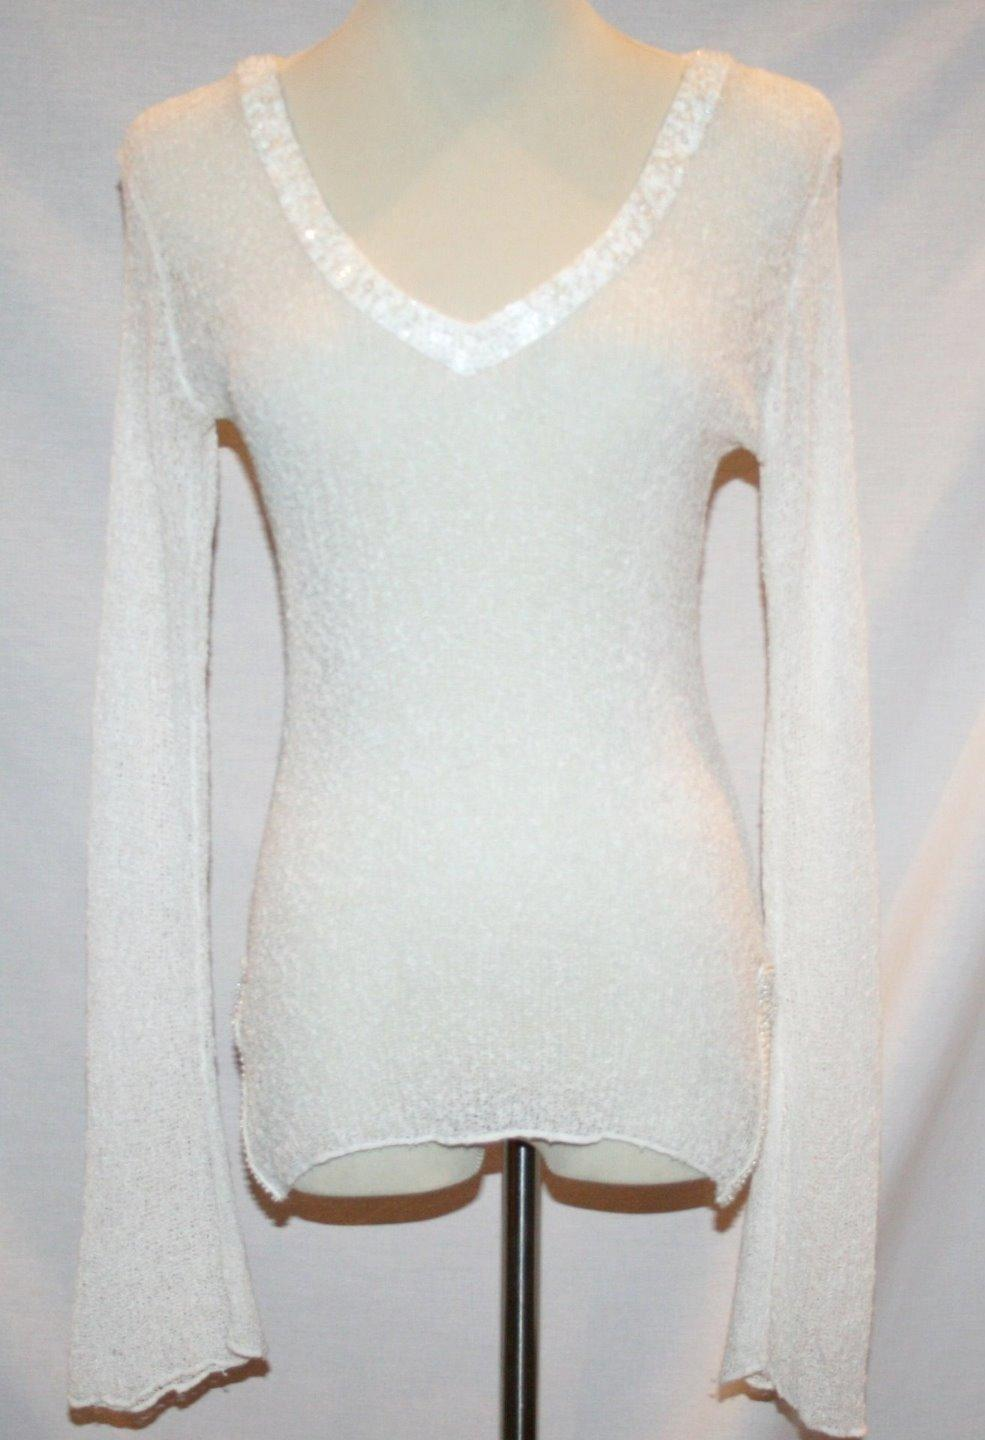 PURP7E White Mesh Long Sleeve Beaded Trim Sheer Cover Up Top  Small      #1224